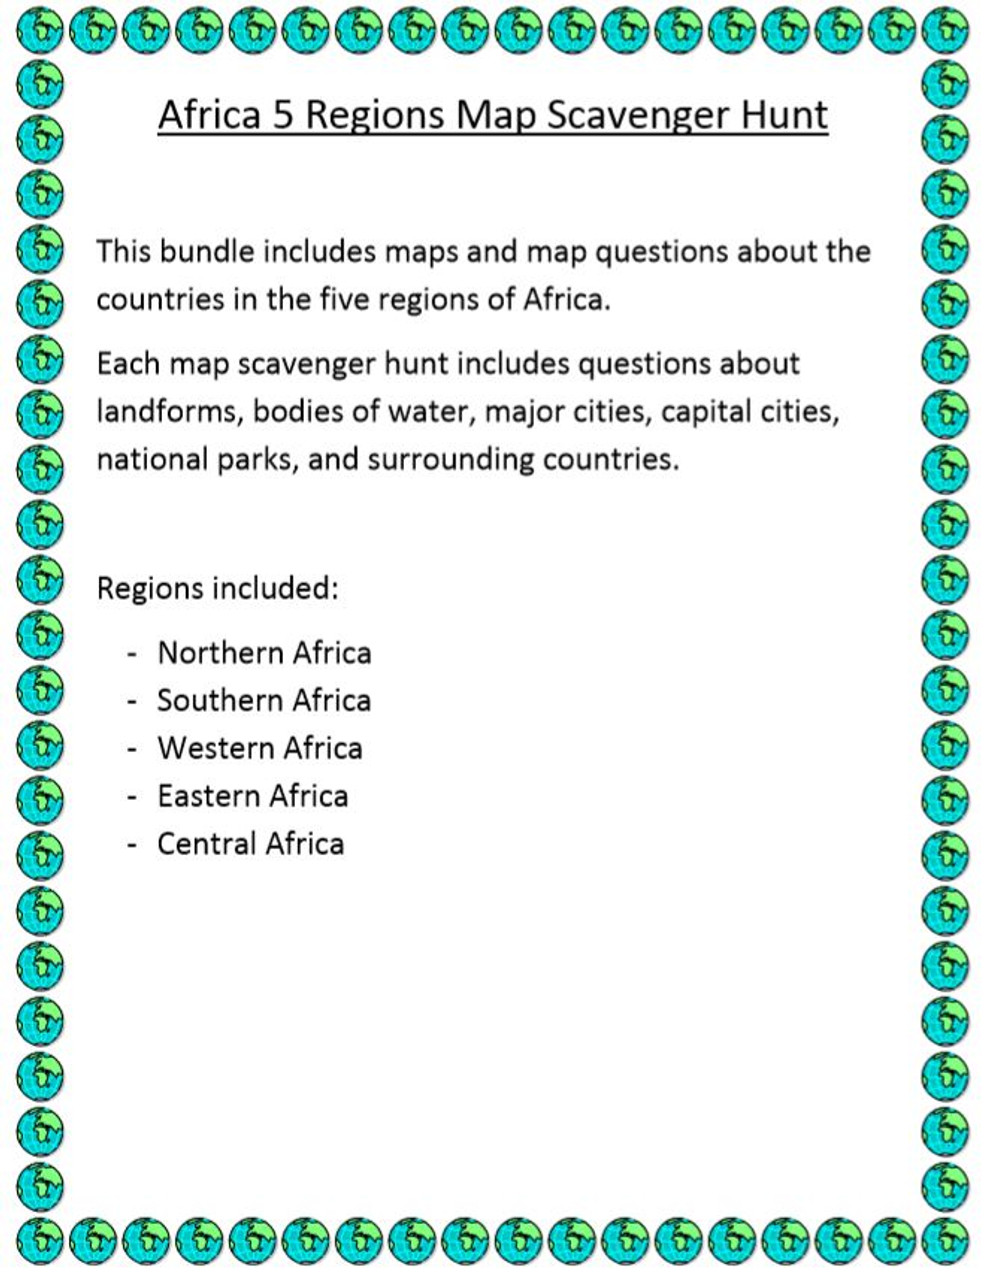 Africa 5 regions map scavenger hunt amped up learning africa 5 regions map scavenger hunt gumiabroncs Gallery